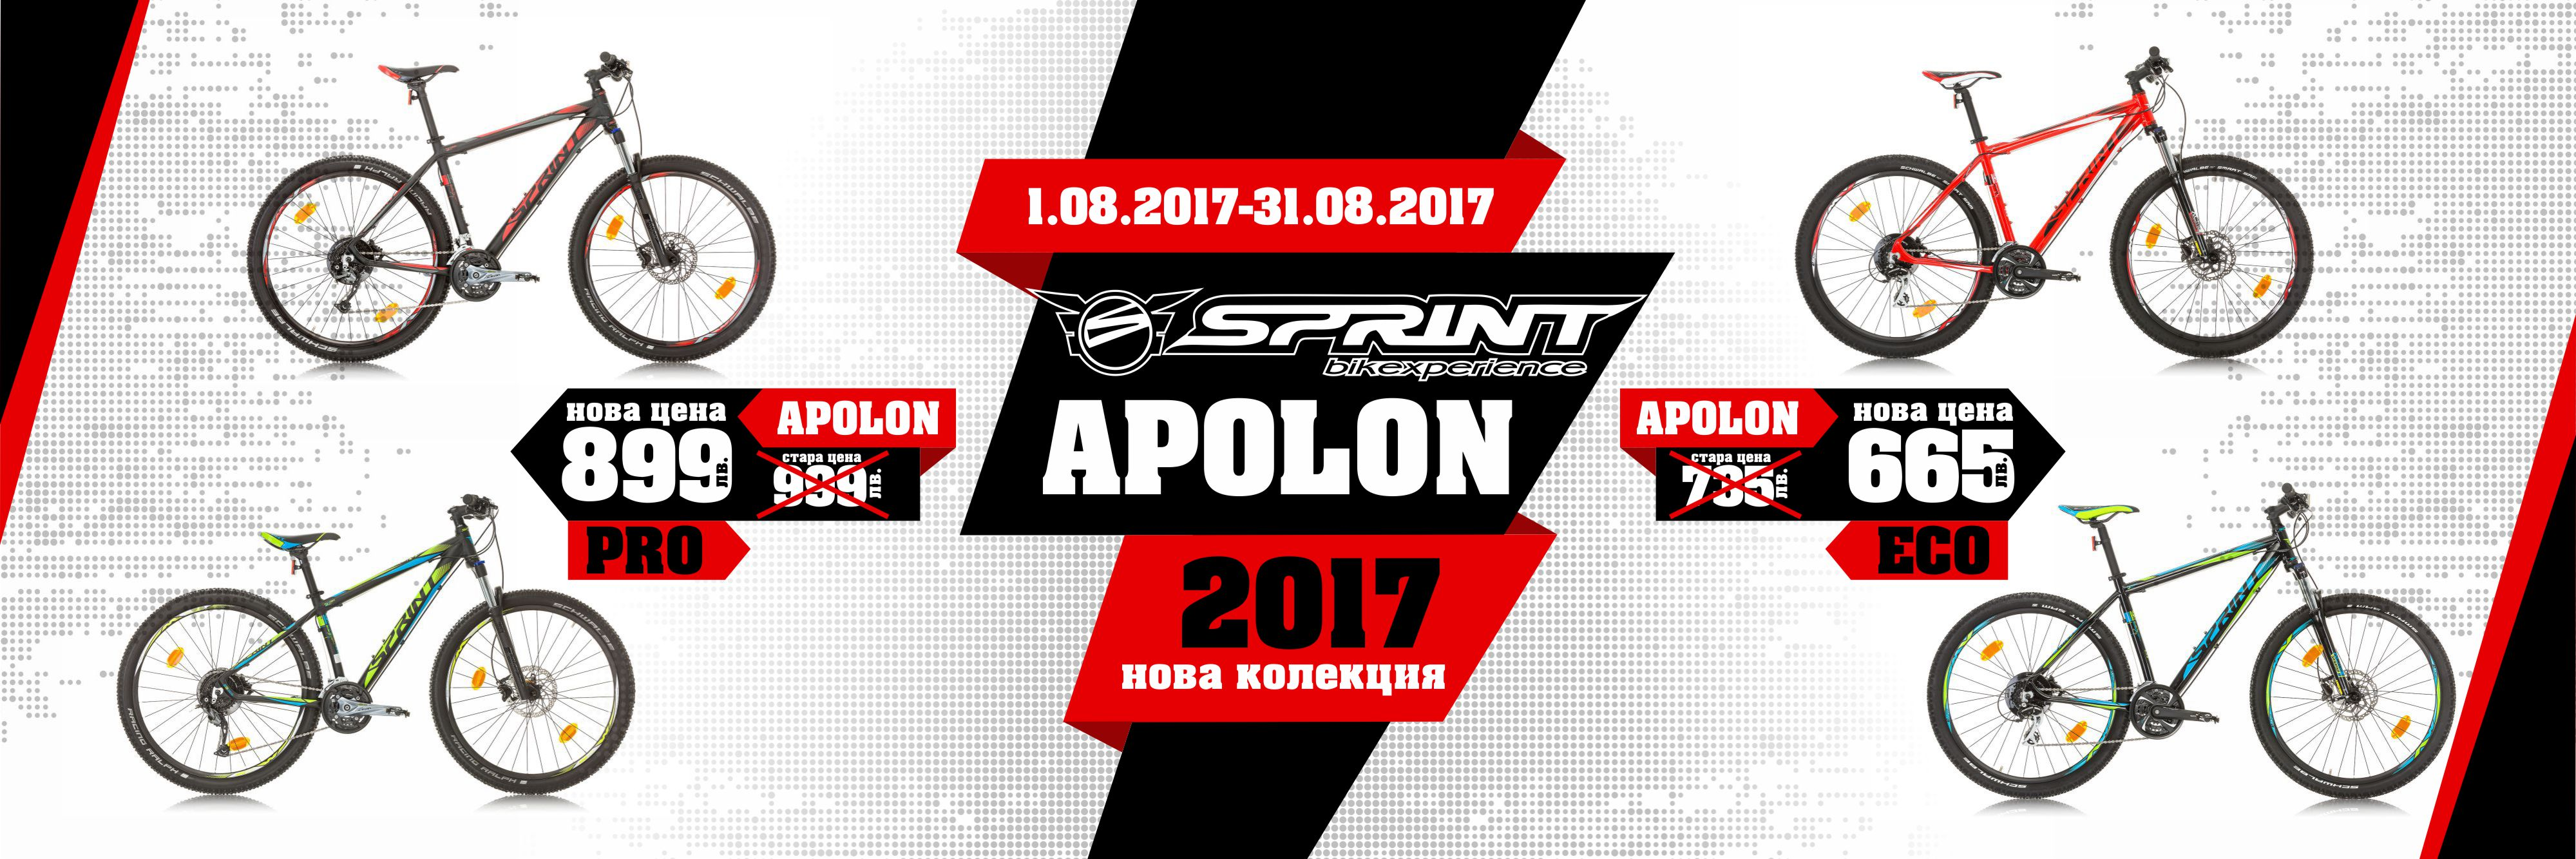 Промоция на Sprint Apolon - promociq-na-sprint-apolon